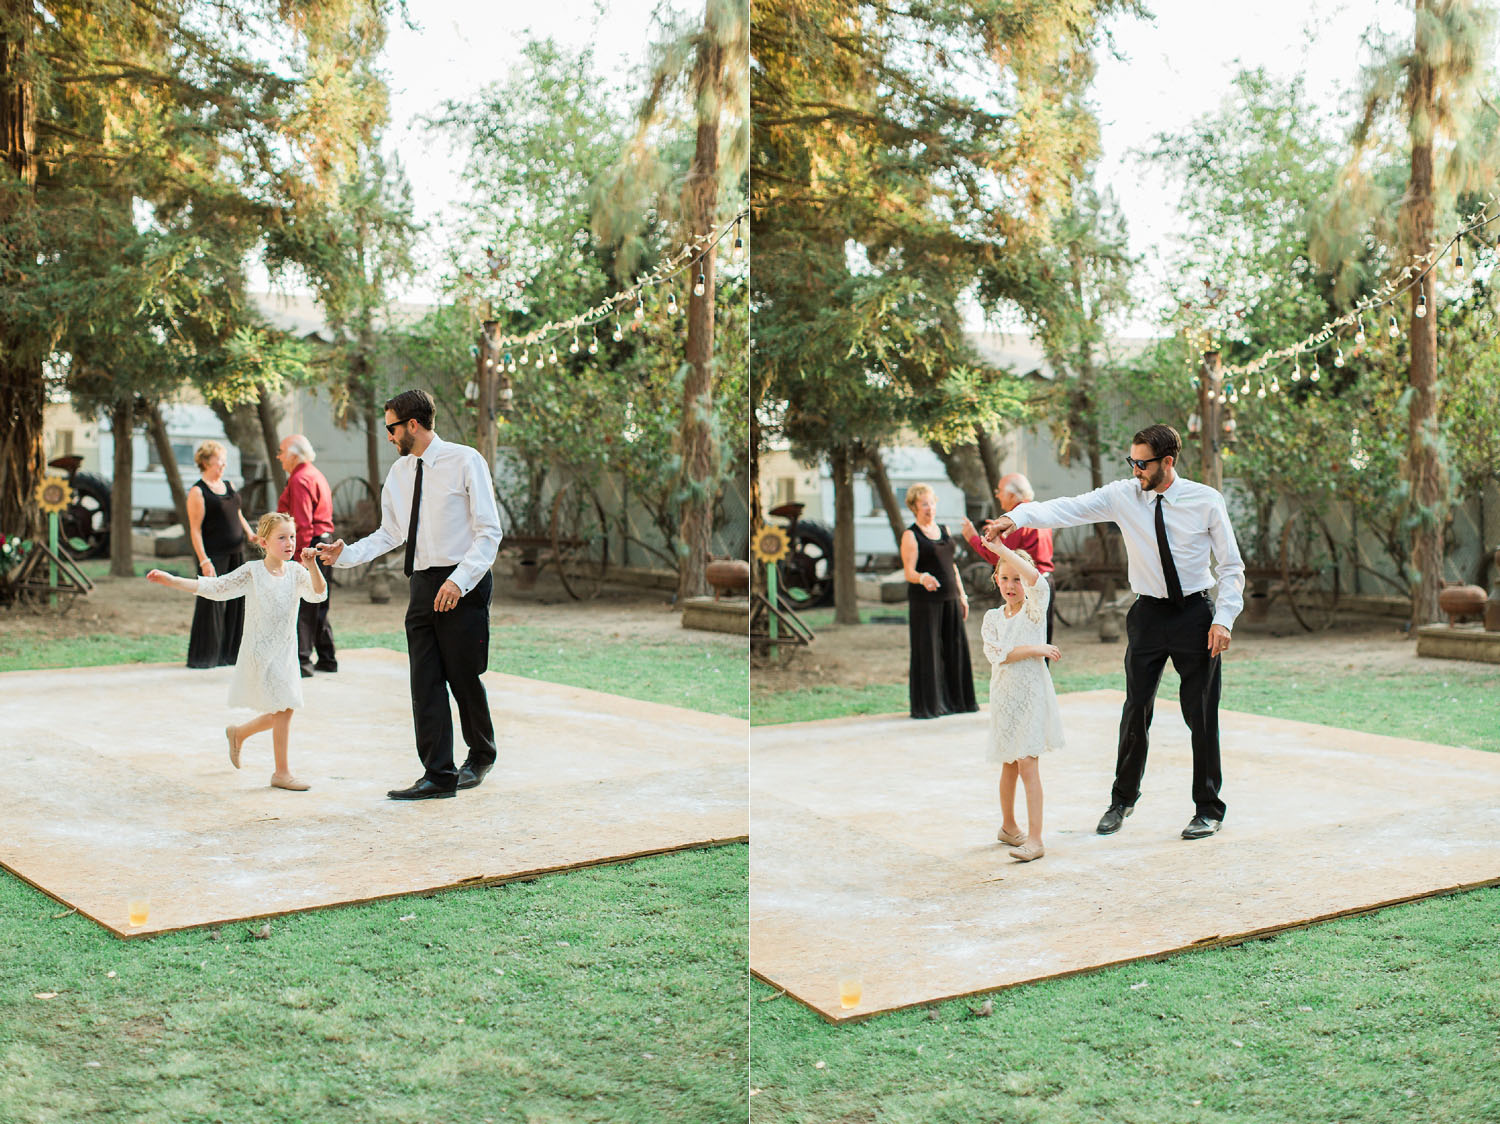 The Photege - Elegant Boho Wedding on Suburu Farm in Bakersfield California- Cassie and Darin Buoni-3050